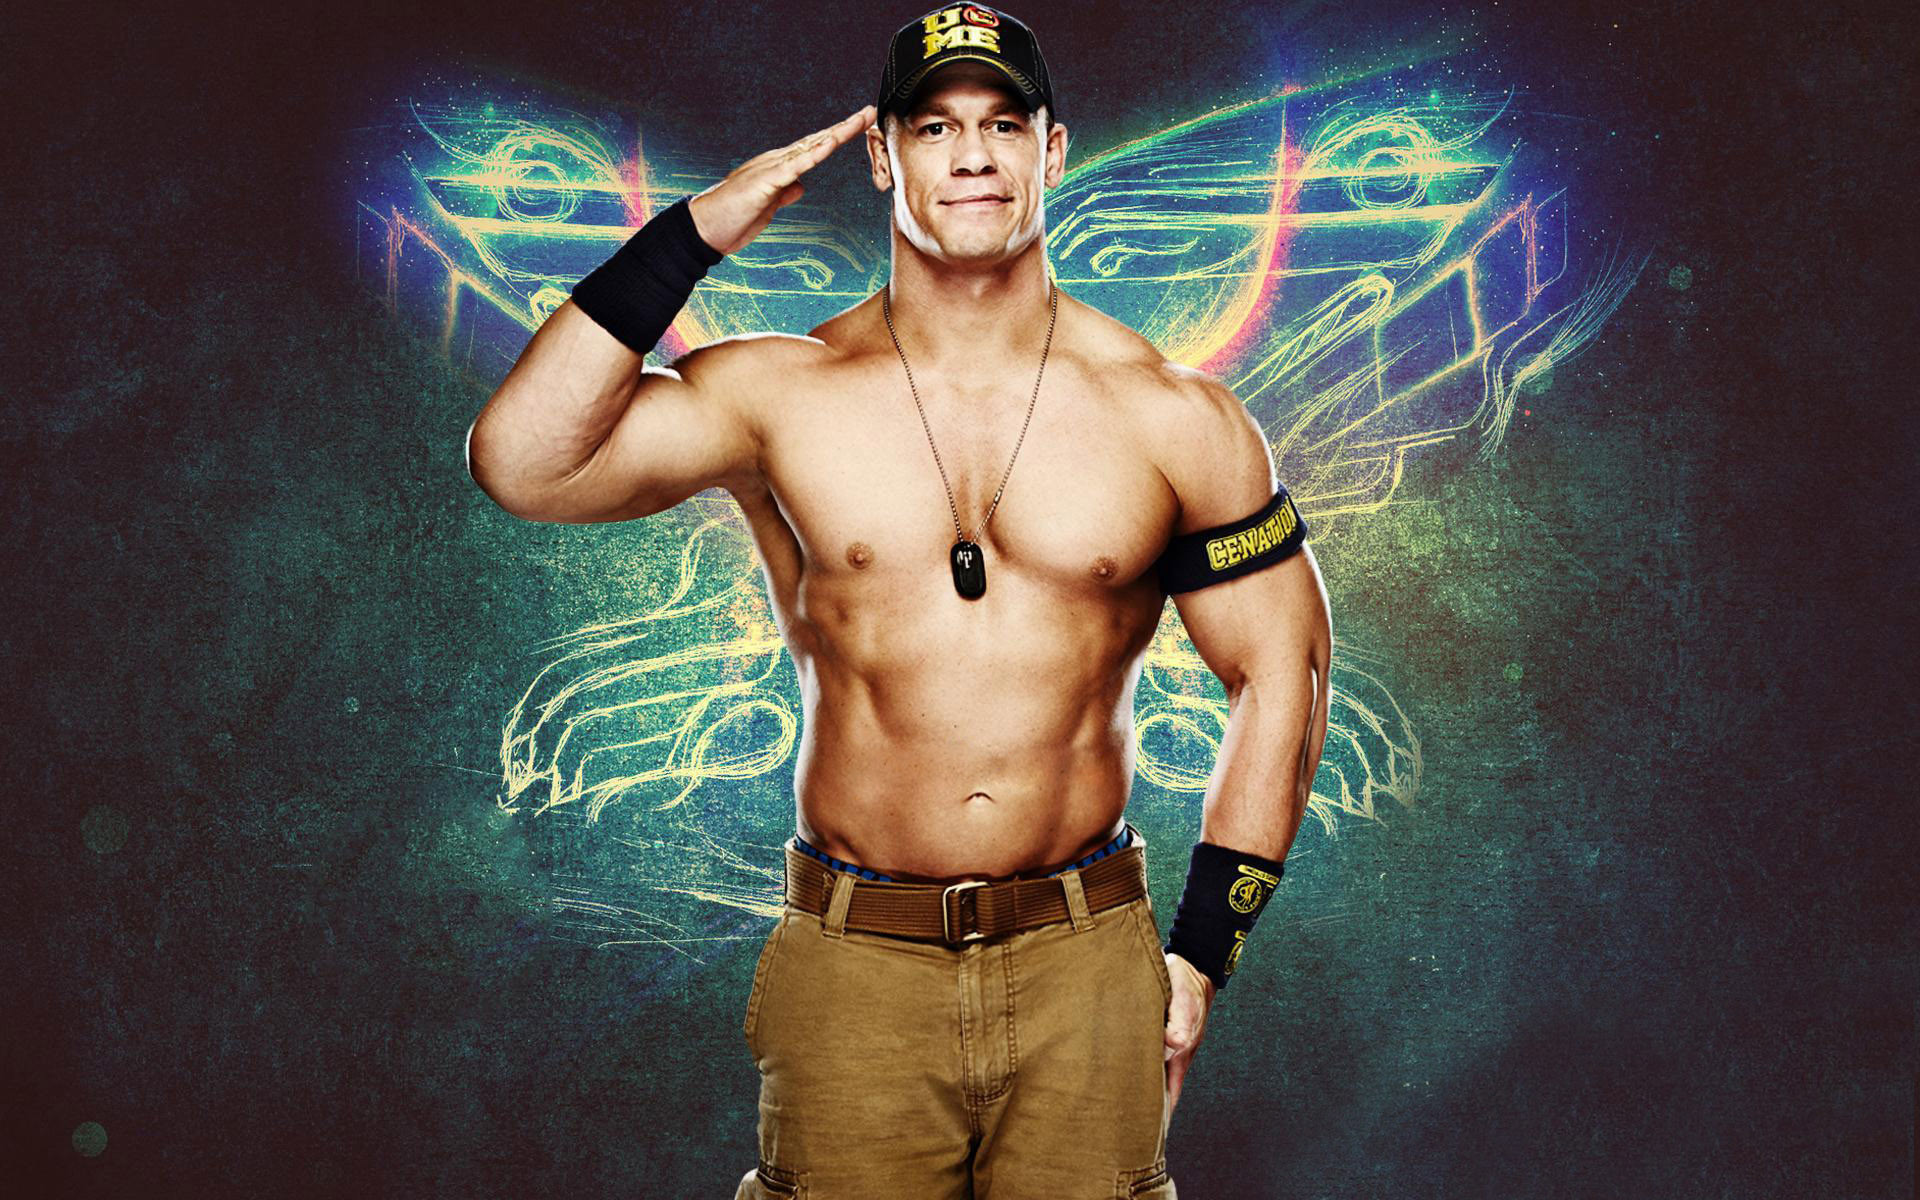 Wwe Superstar John Cena Wallpapers 63 Background Pictures